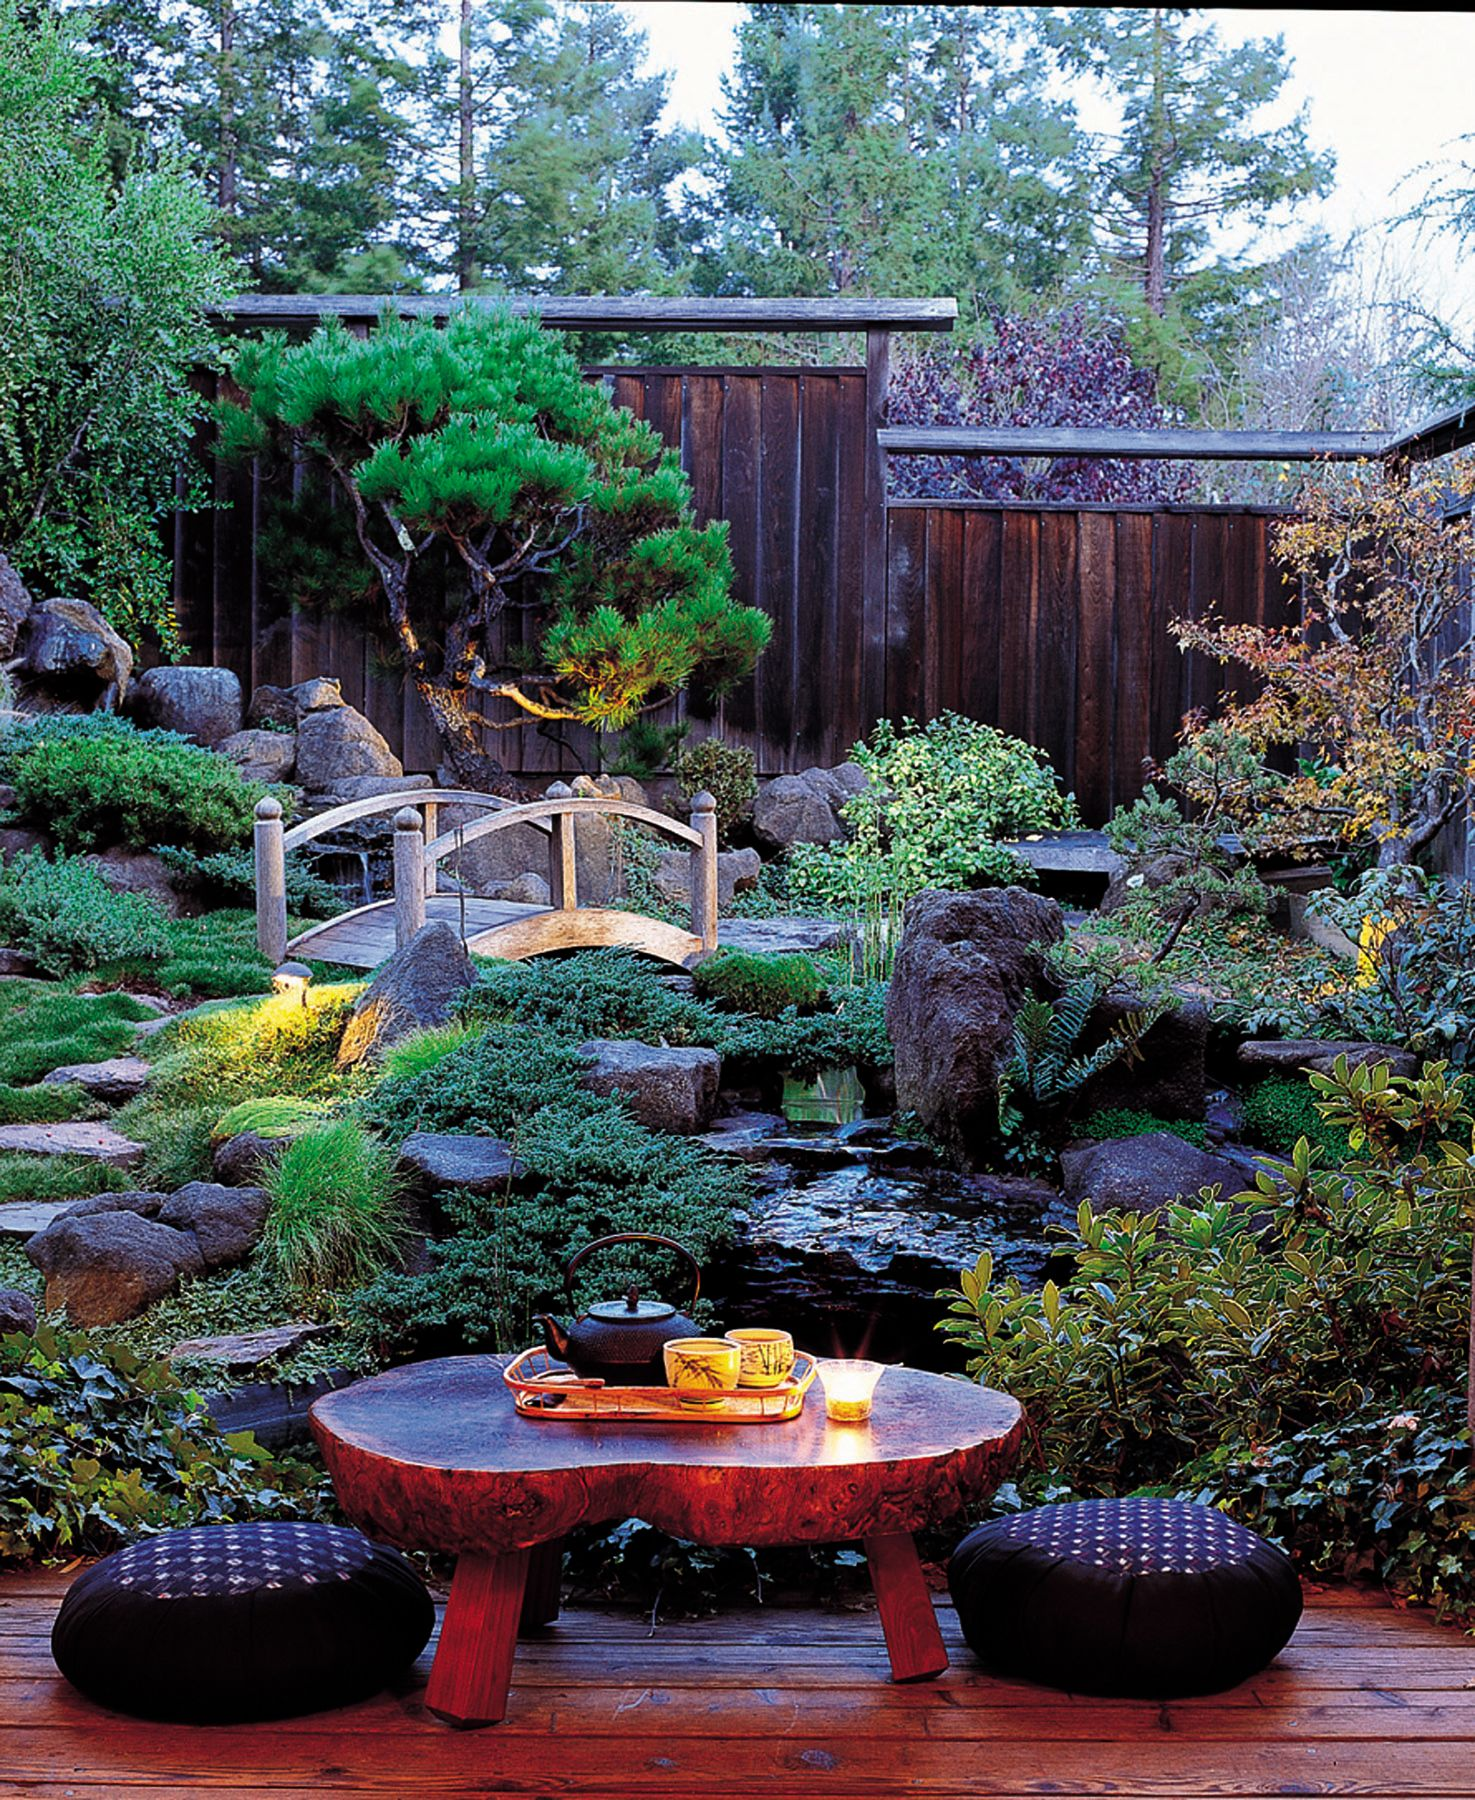 Osmosis Day Spa Japanese Garden Landscape Japan Garden